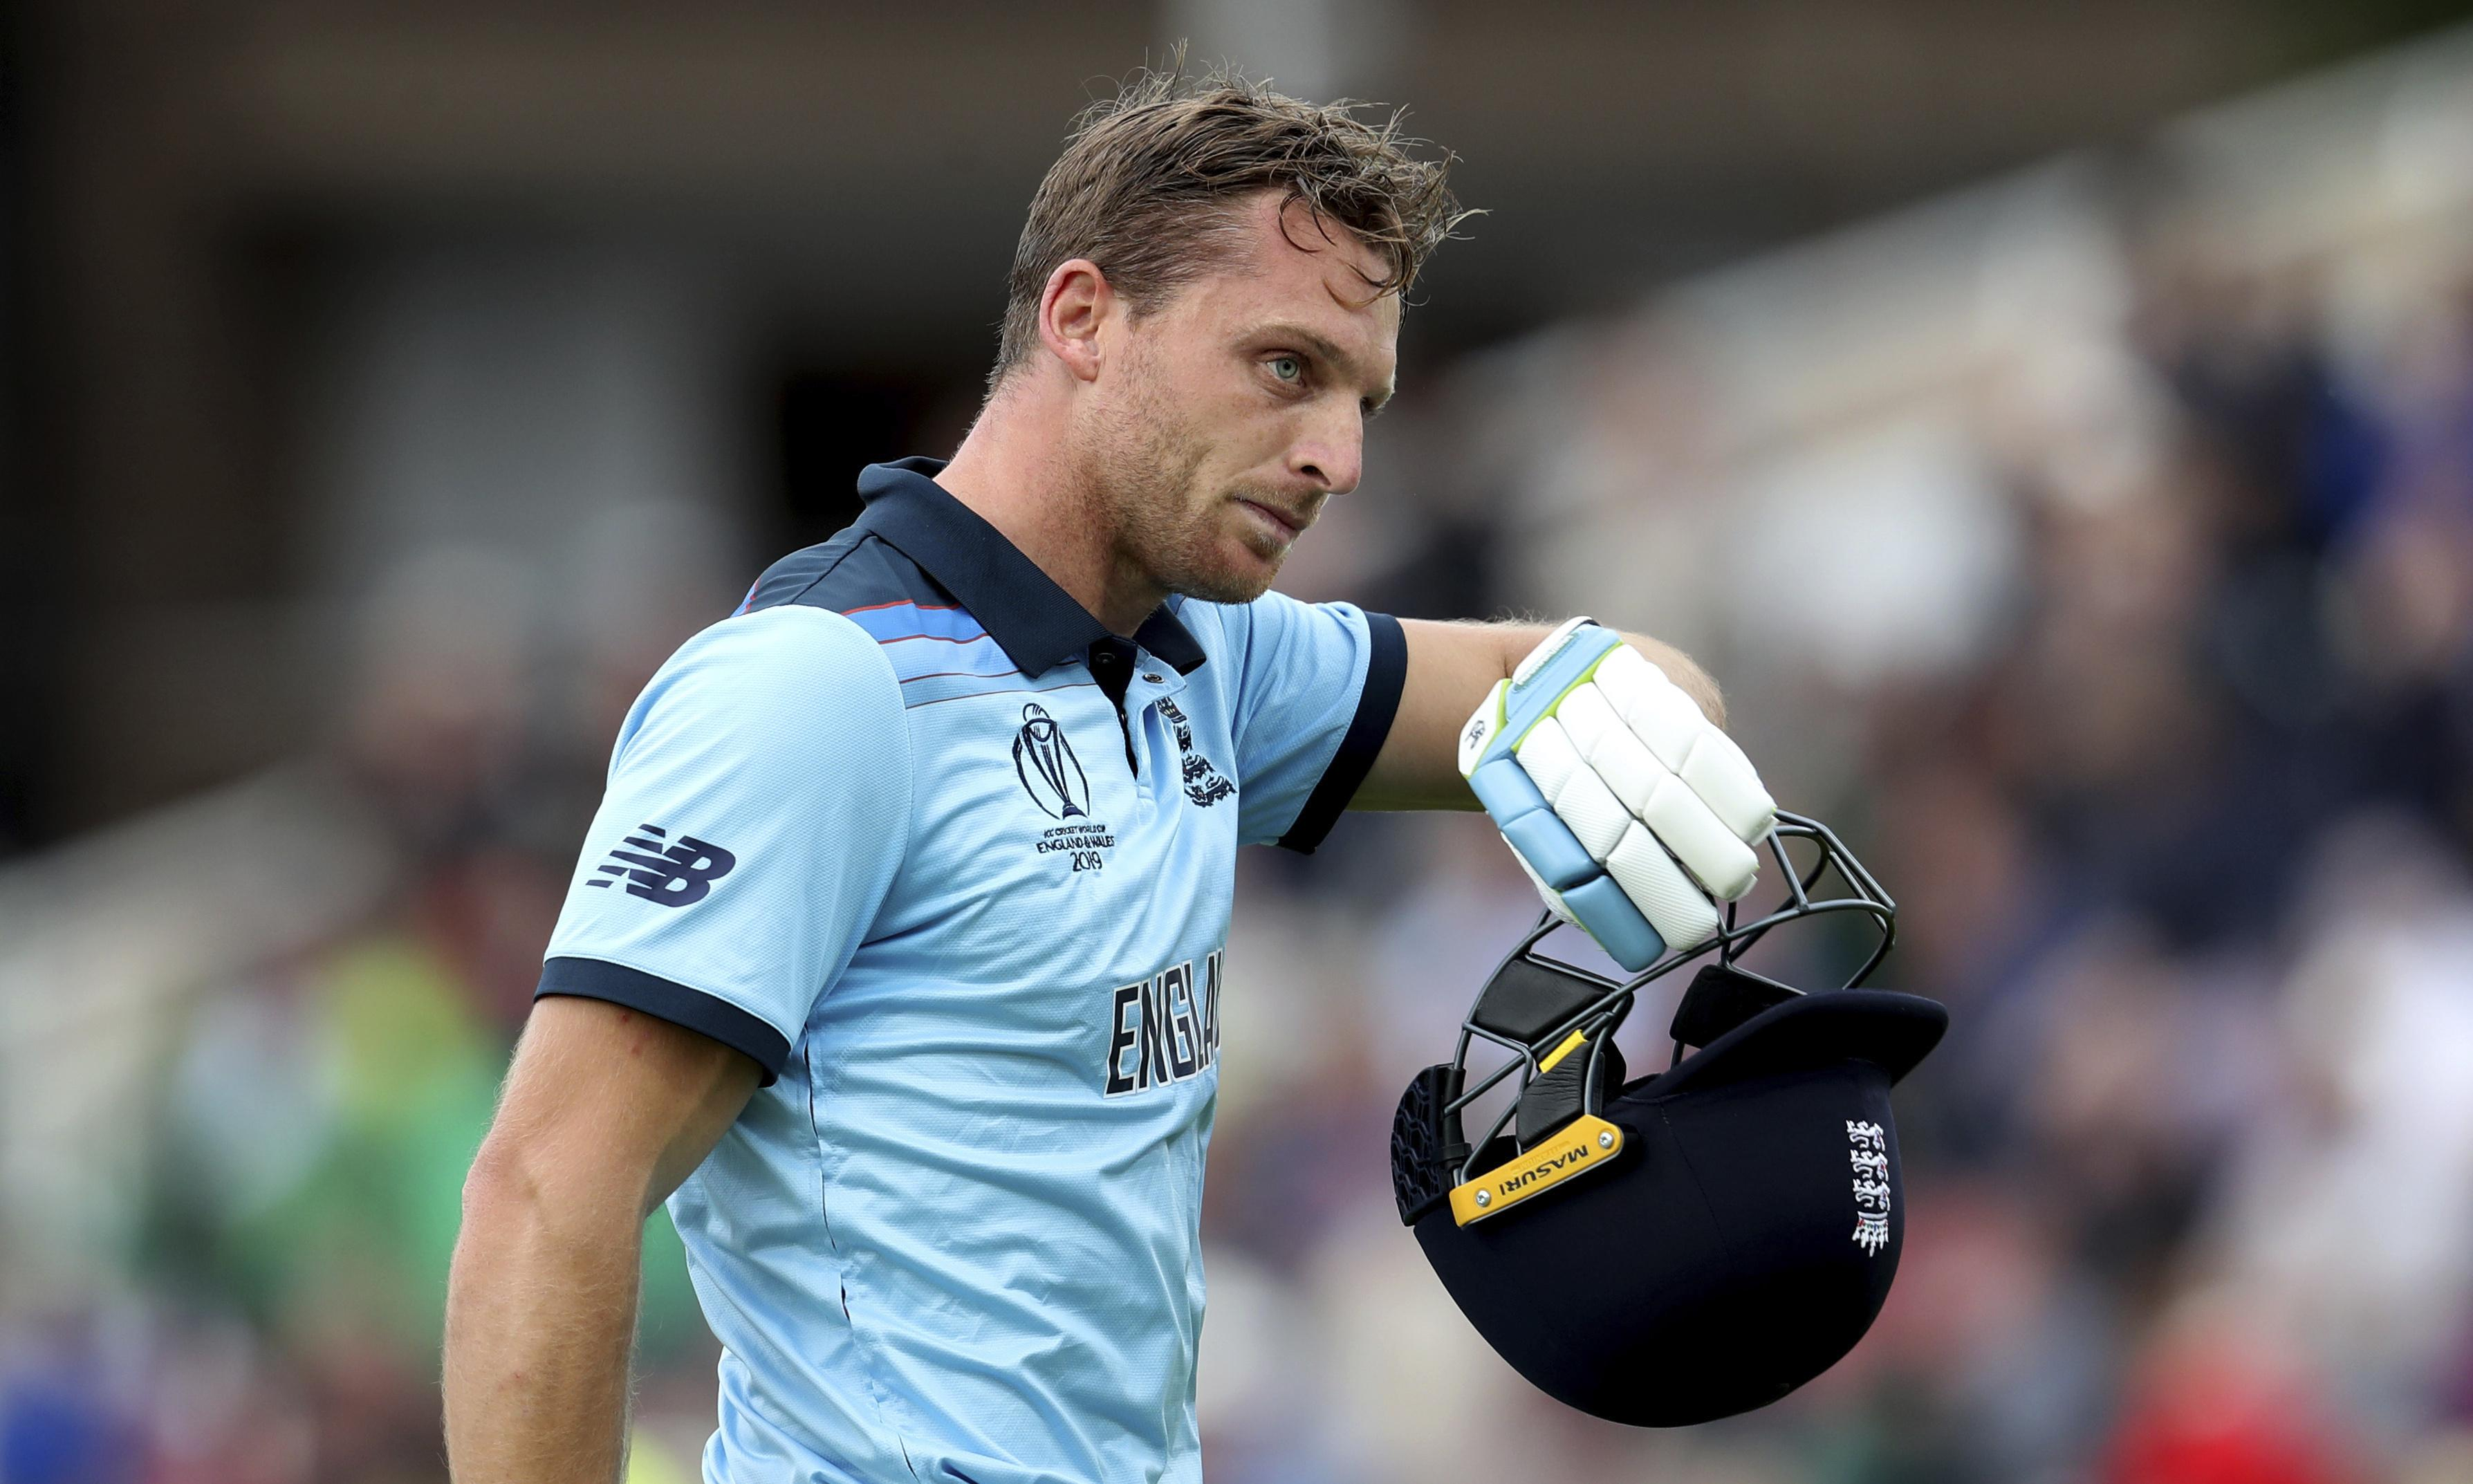 Jos Buttler could be given leading role for England against Afghanistan